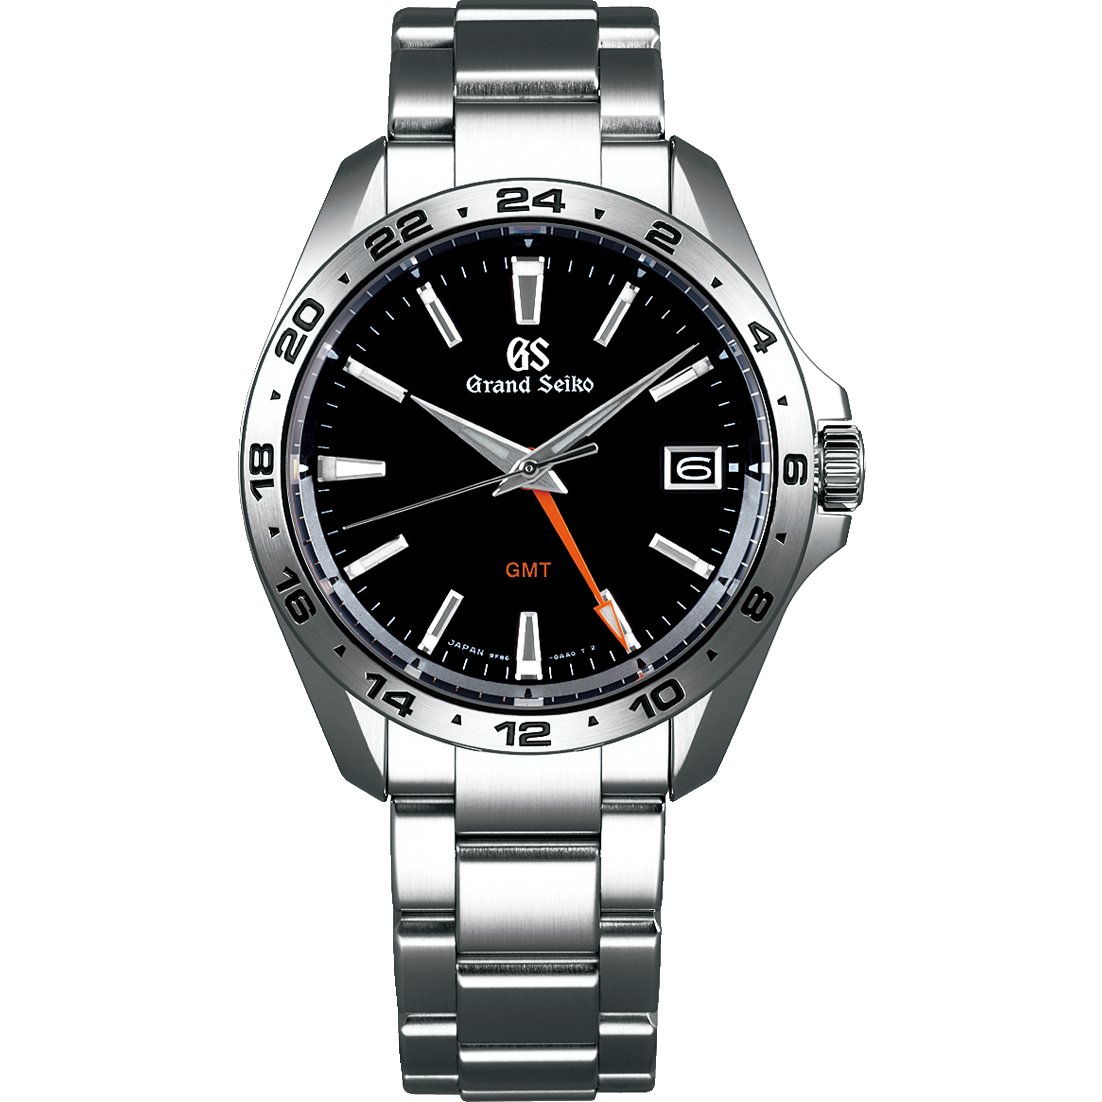 Grand Seiko Sport GMT Quartz Watch